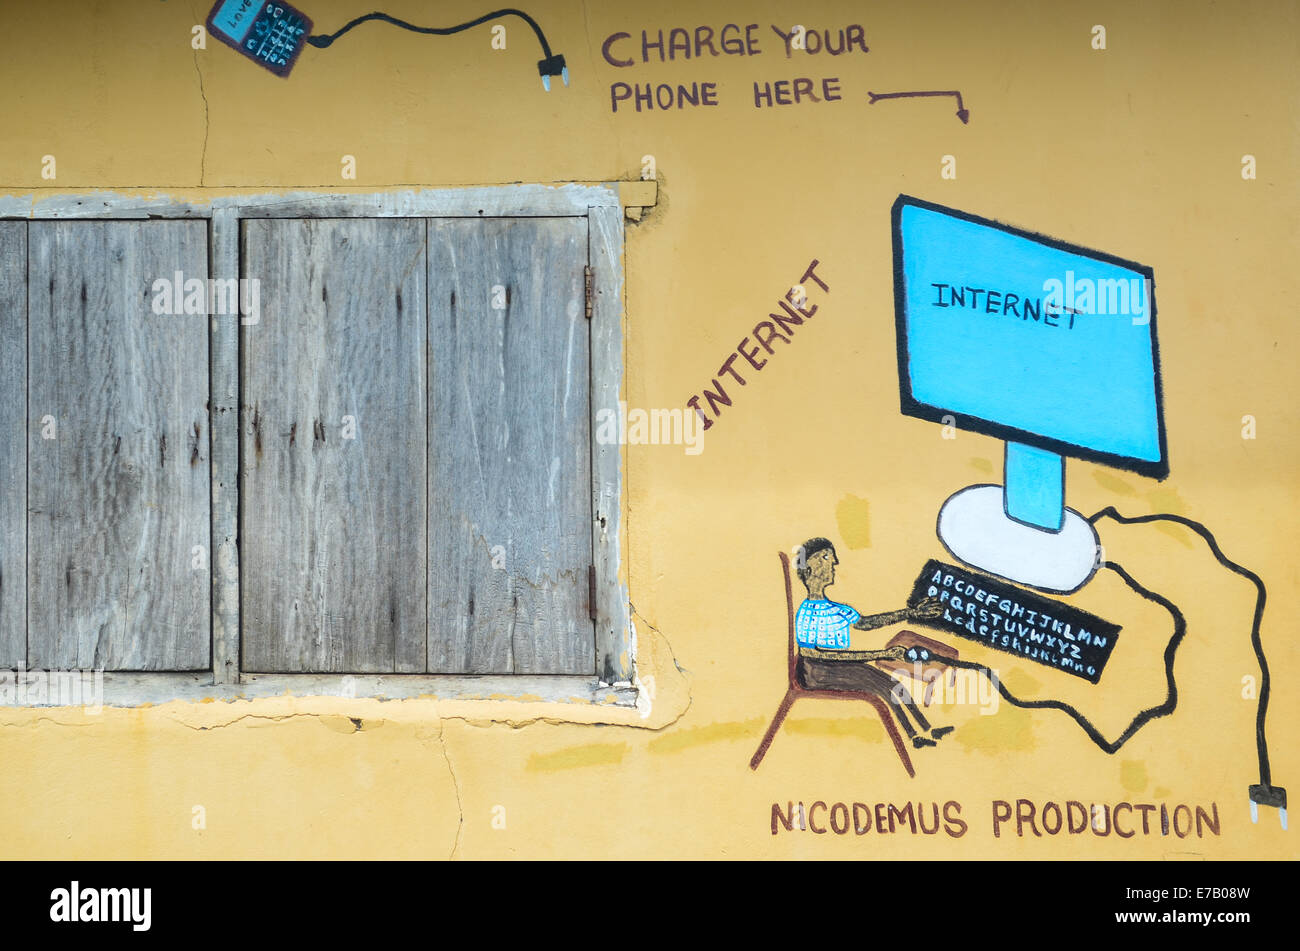 Internet café in the rural Sierra Leone, that is mostly used to charge cellphones as people don't have - Stock Image